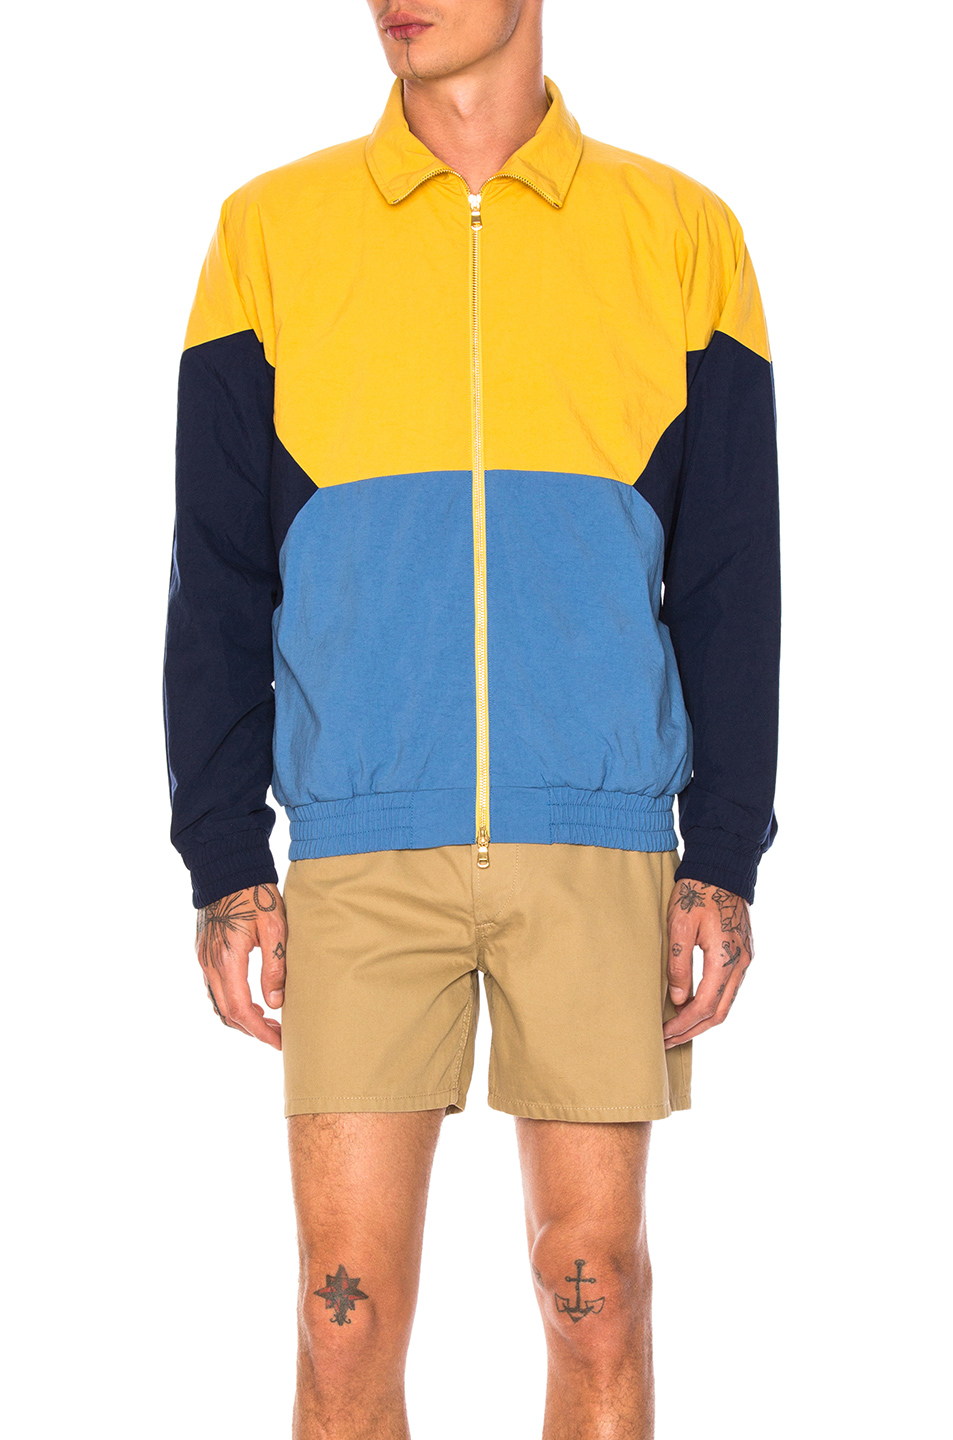 Aime Leon Dore Full Zip Windbreaker in Yellow,Blue